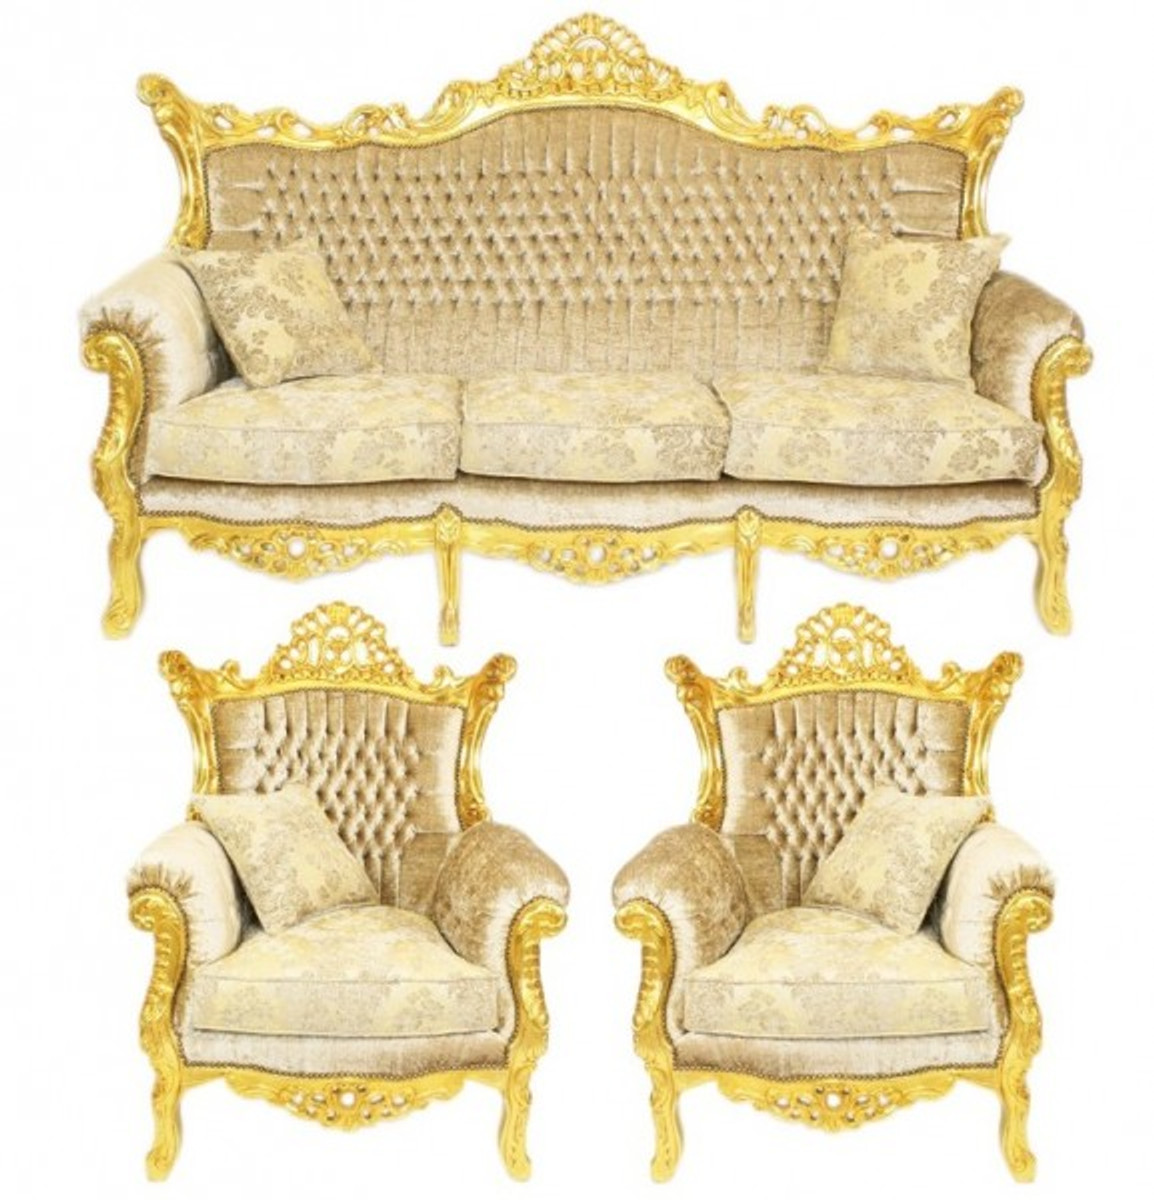 Casa padrino baroque living set master cream velvet gold for Sofa barock